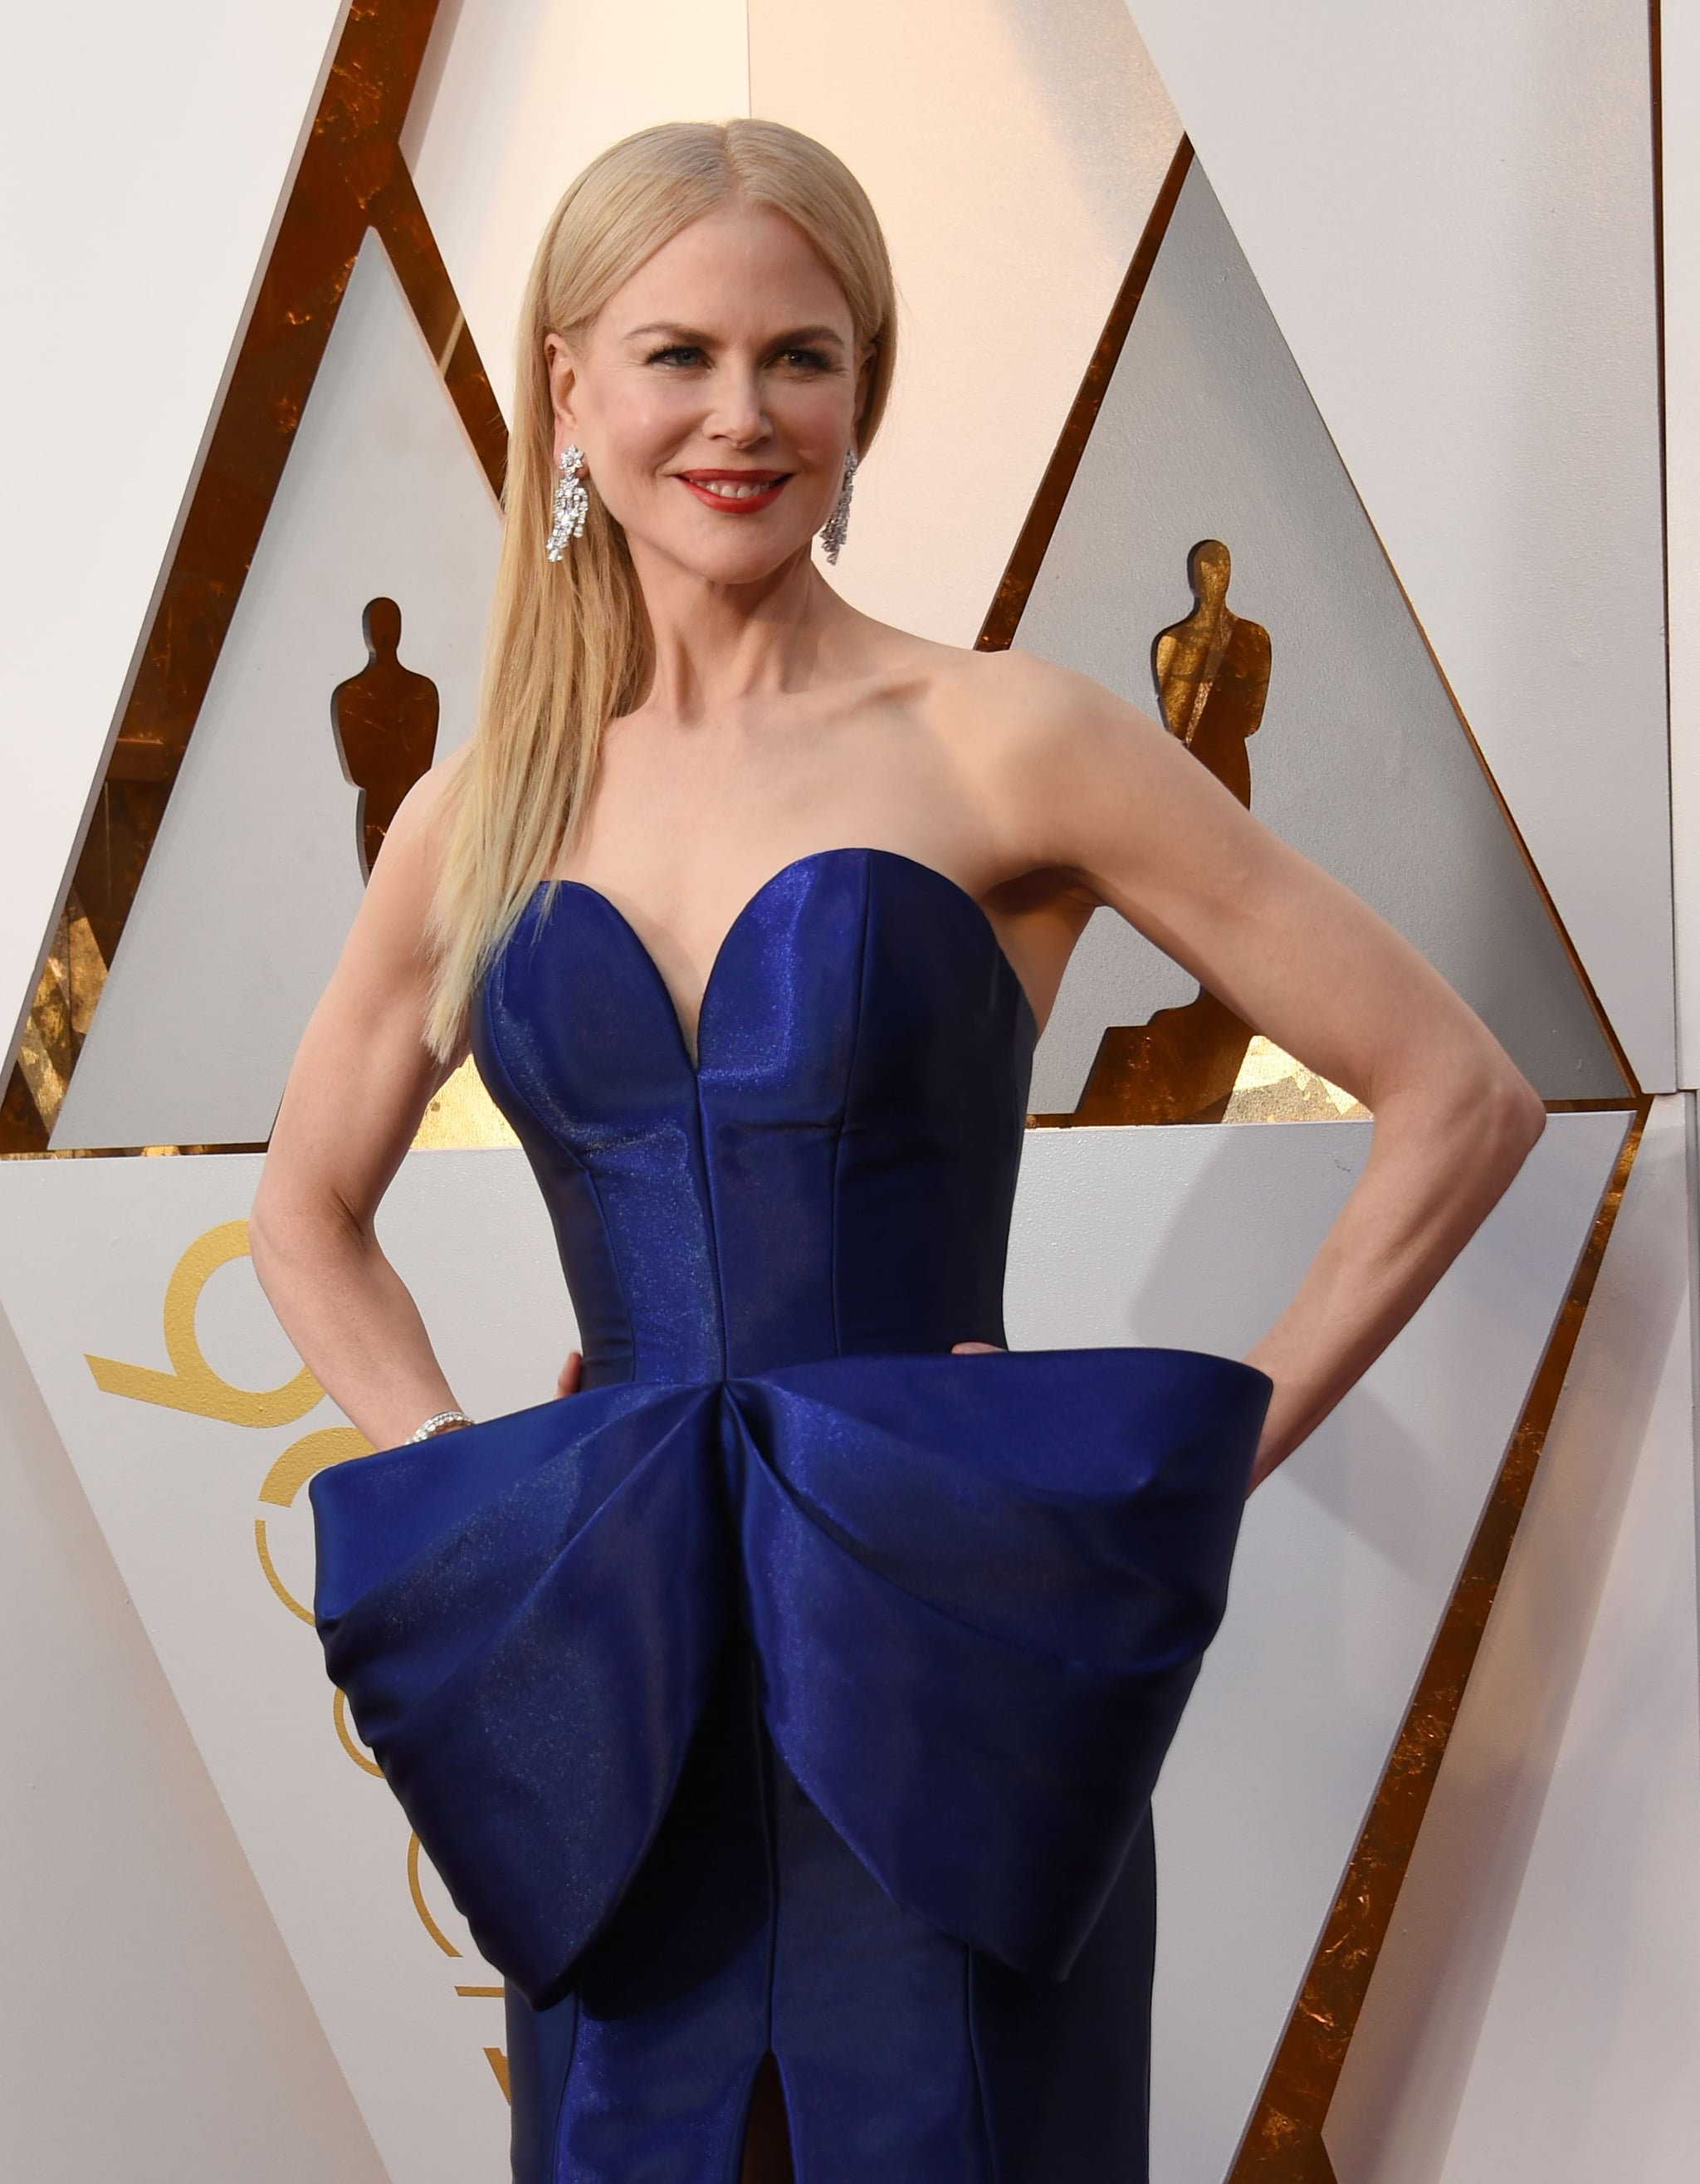 Actress Nicole Kidman arrives for the 90th Annual Academy Awards on March 4, 2018, in Hollywood, California.  / AFP PHOTO / VALERIE MACON        (Photo credit should read VALERIE MACON/AFP/Getty Images)